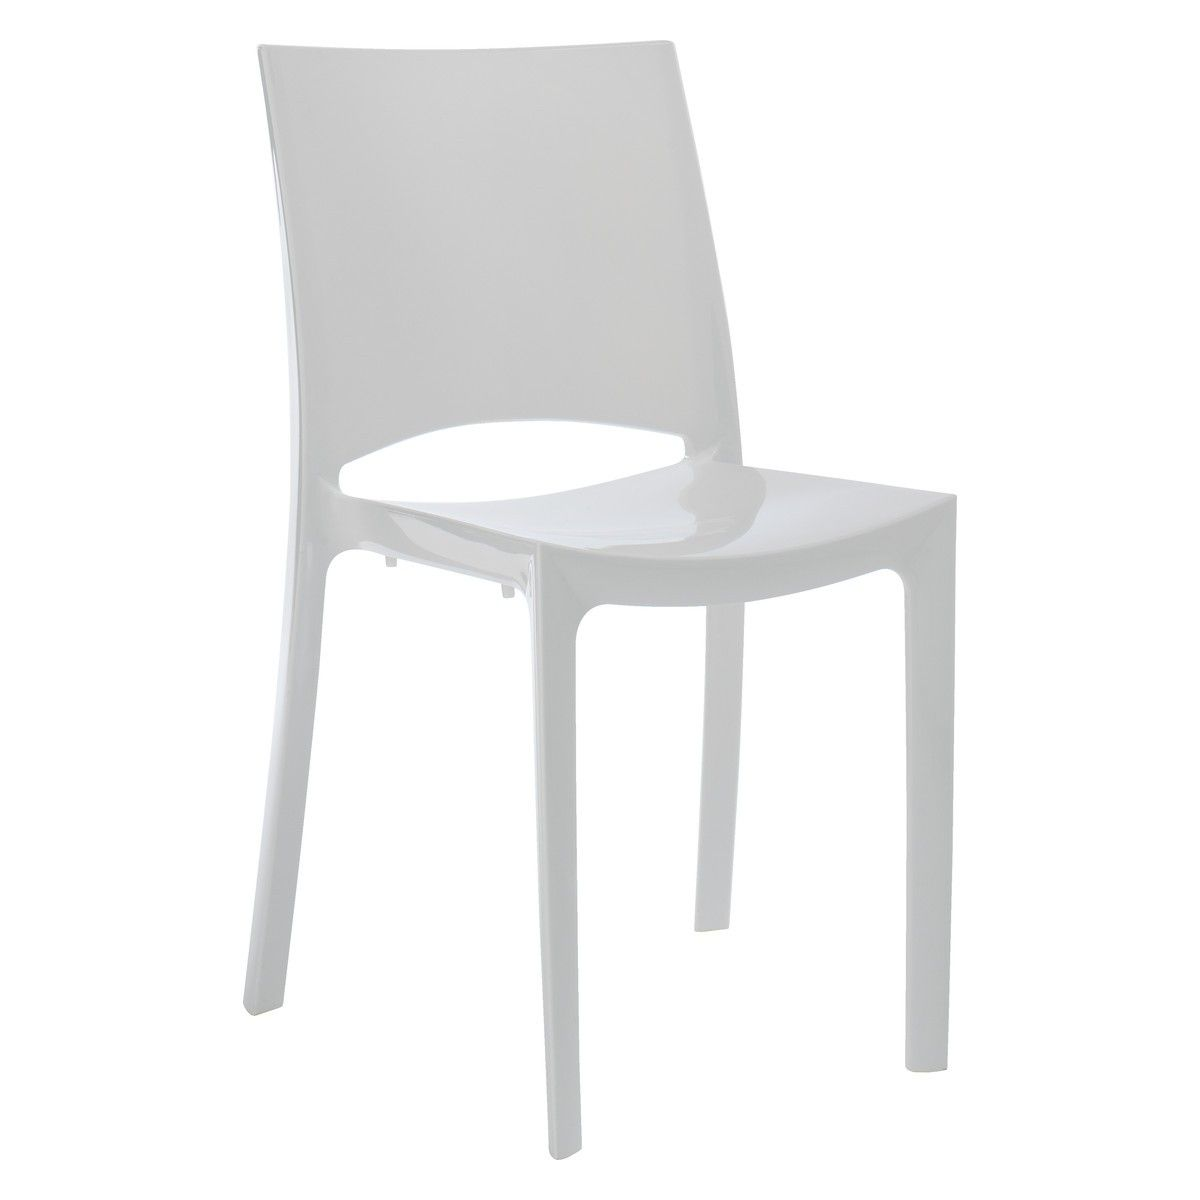 Verne White Plastic Stackable Dining Chair Buy Now At Habitat Uk Los Furniture Pinterest